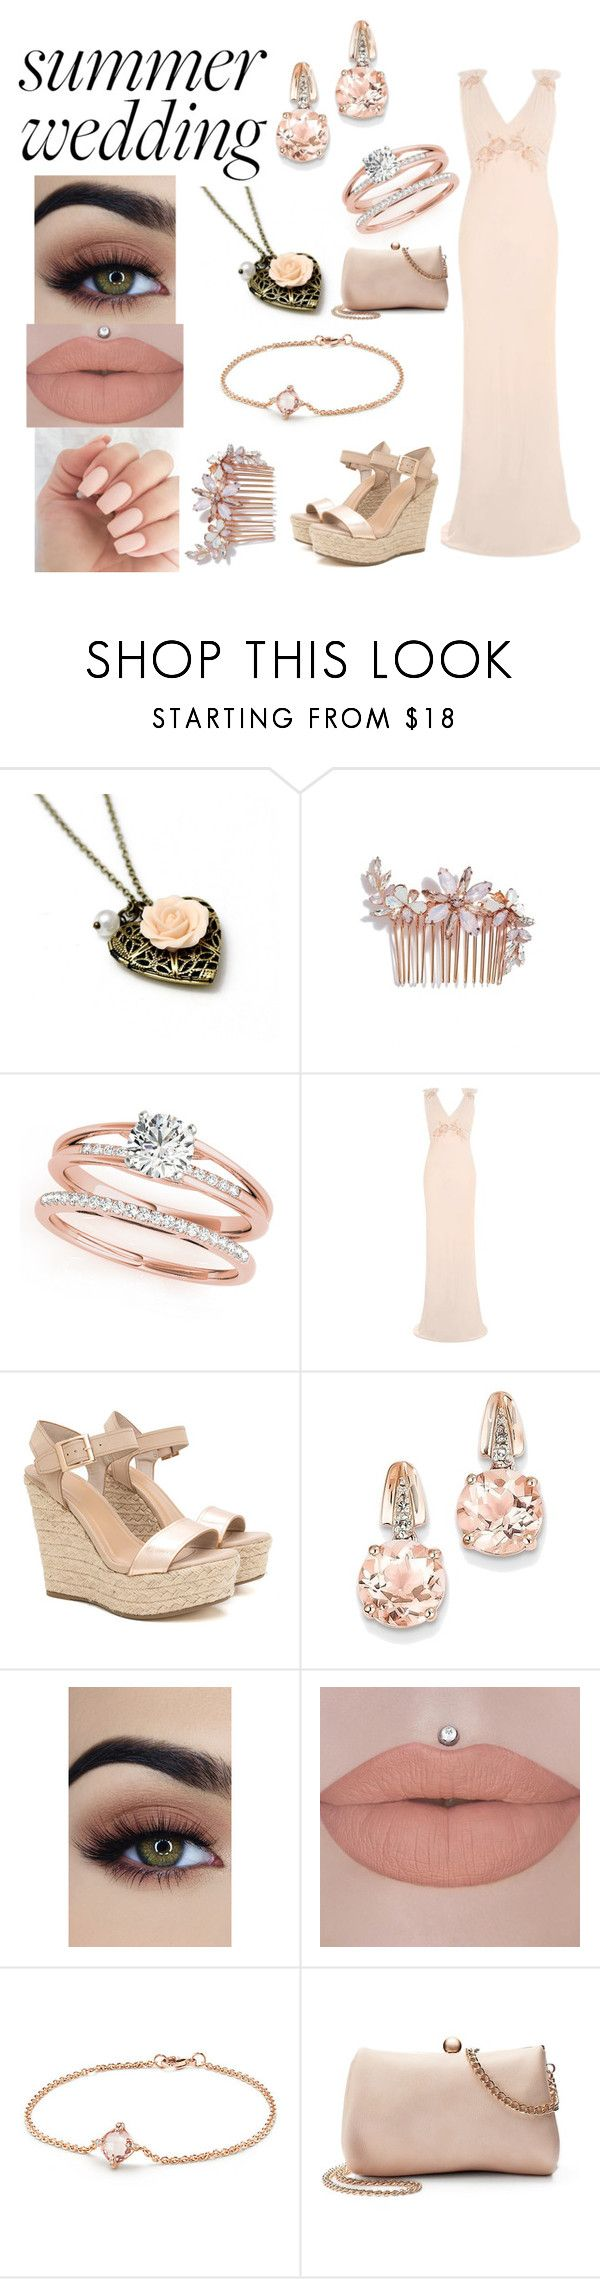 """rose gold summer wedding"" by mialove421 ❤ liked on Polyvore featuring Camilla Christine, Topshop, BillyTheTree, David Yurman and LC Lauren Conrad"